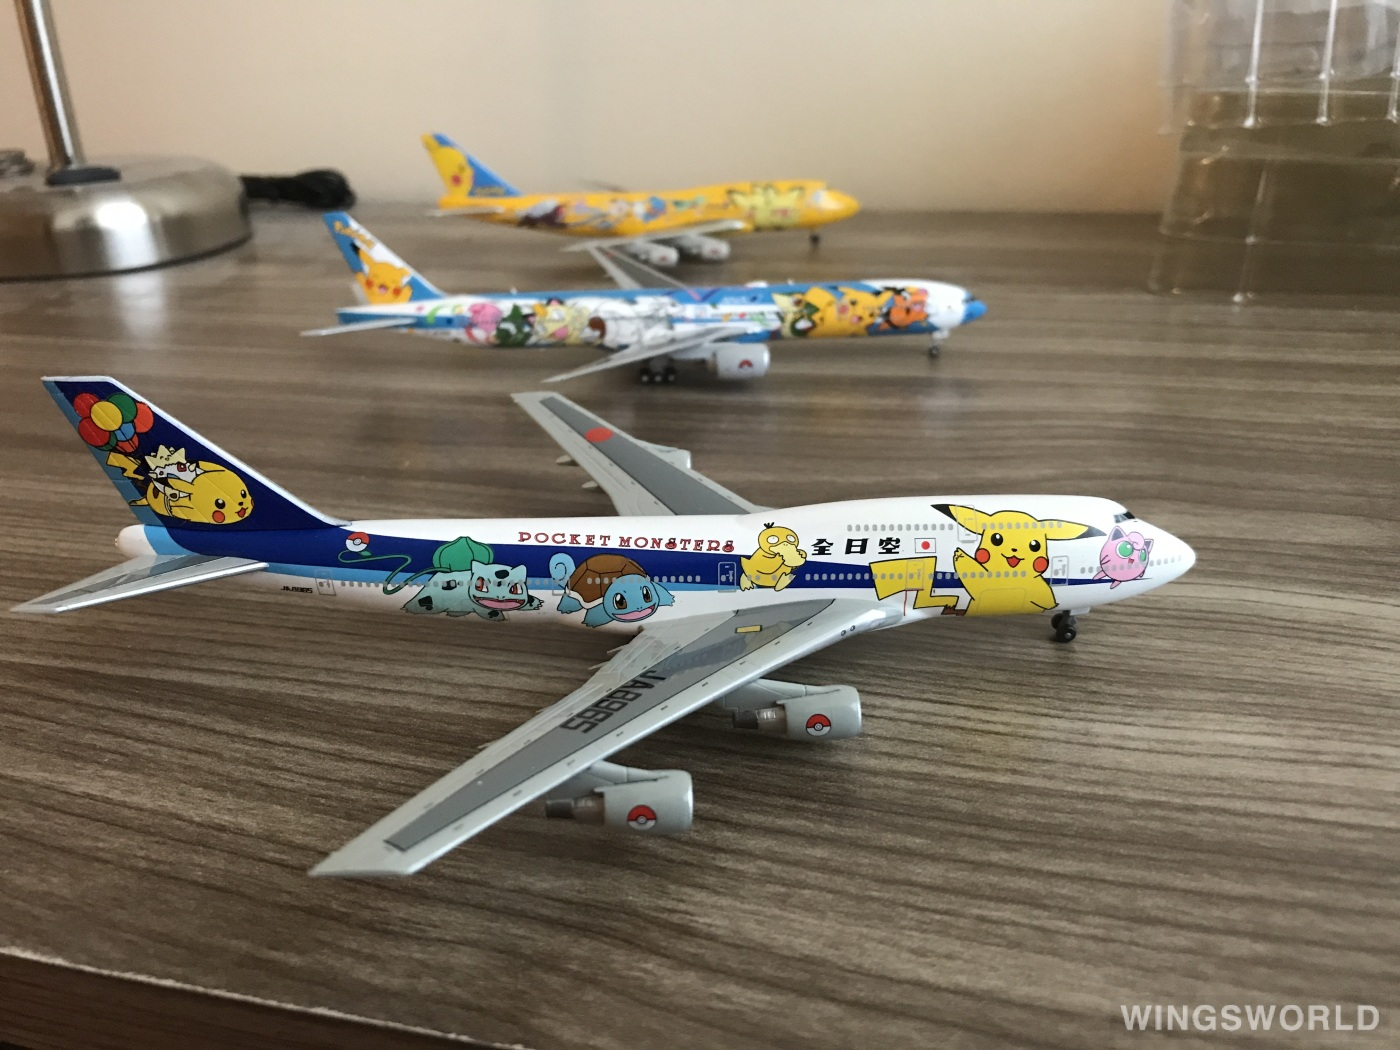 Dragon Models 1:400 Jet009 ANA 全日空 Boeing 747-400 JA8965